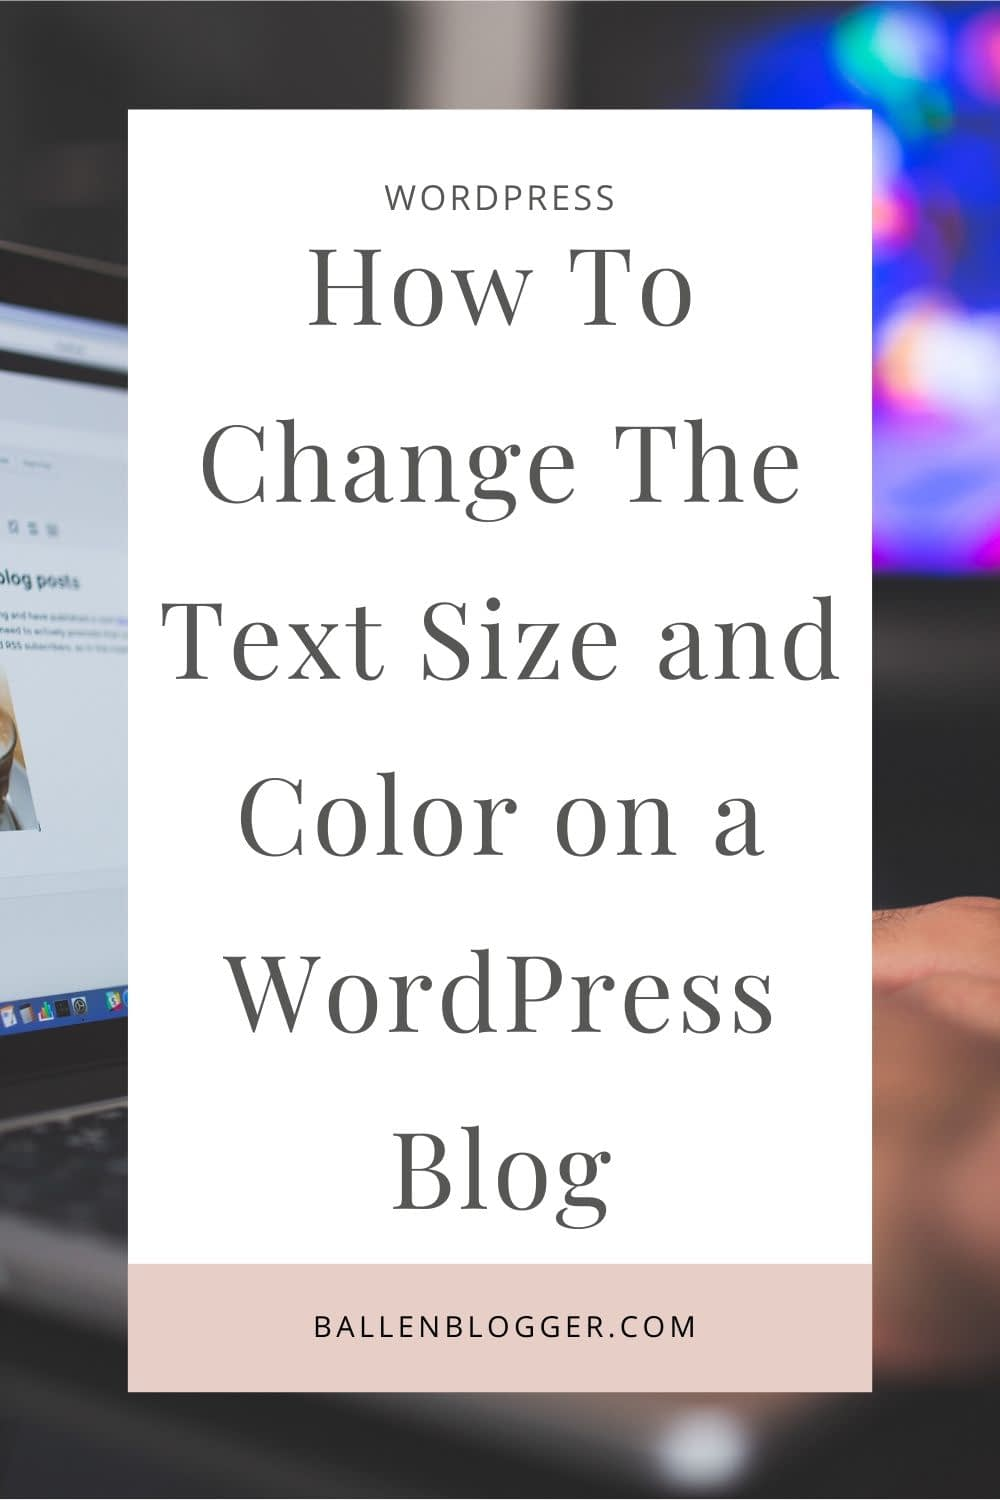 Many bloggers ask how to change the text size and text color on a WordPress Blog or Website. This article will show you how to change text size and color right within the blog post. I use WordPress Gutenberg and Studiopress themes.